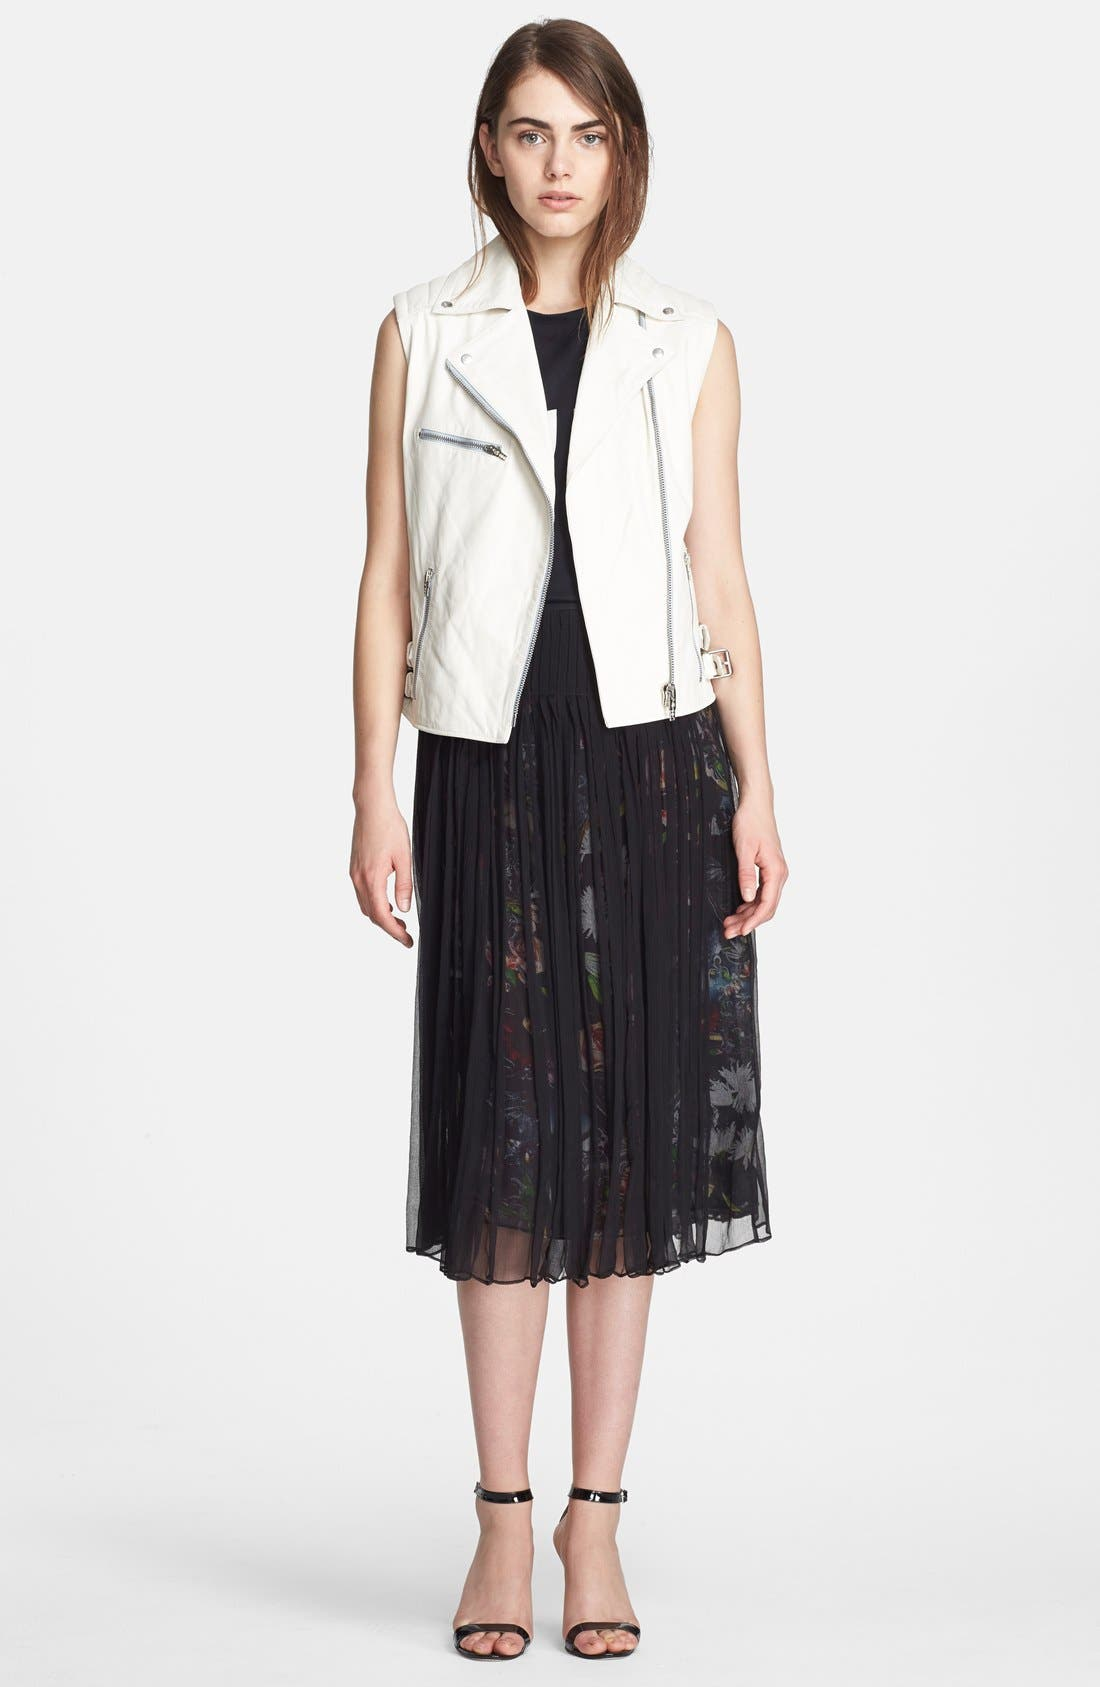 Alternate Image 1 Selected - McQ by Alexander McQueen Leather Moto Gilet Vest